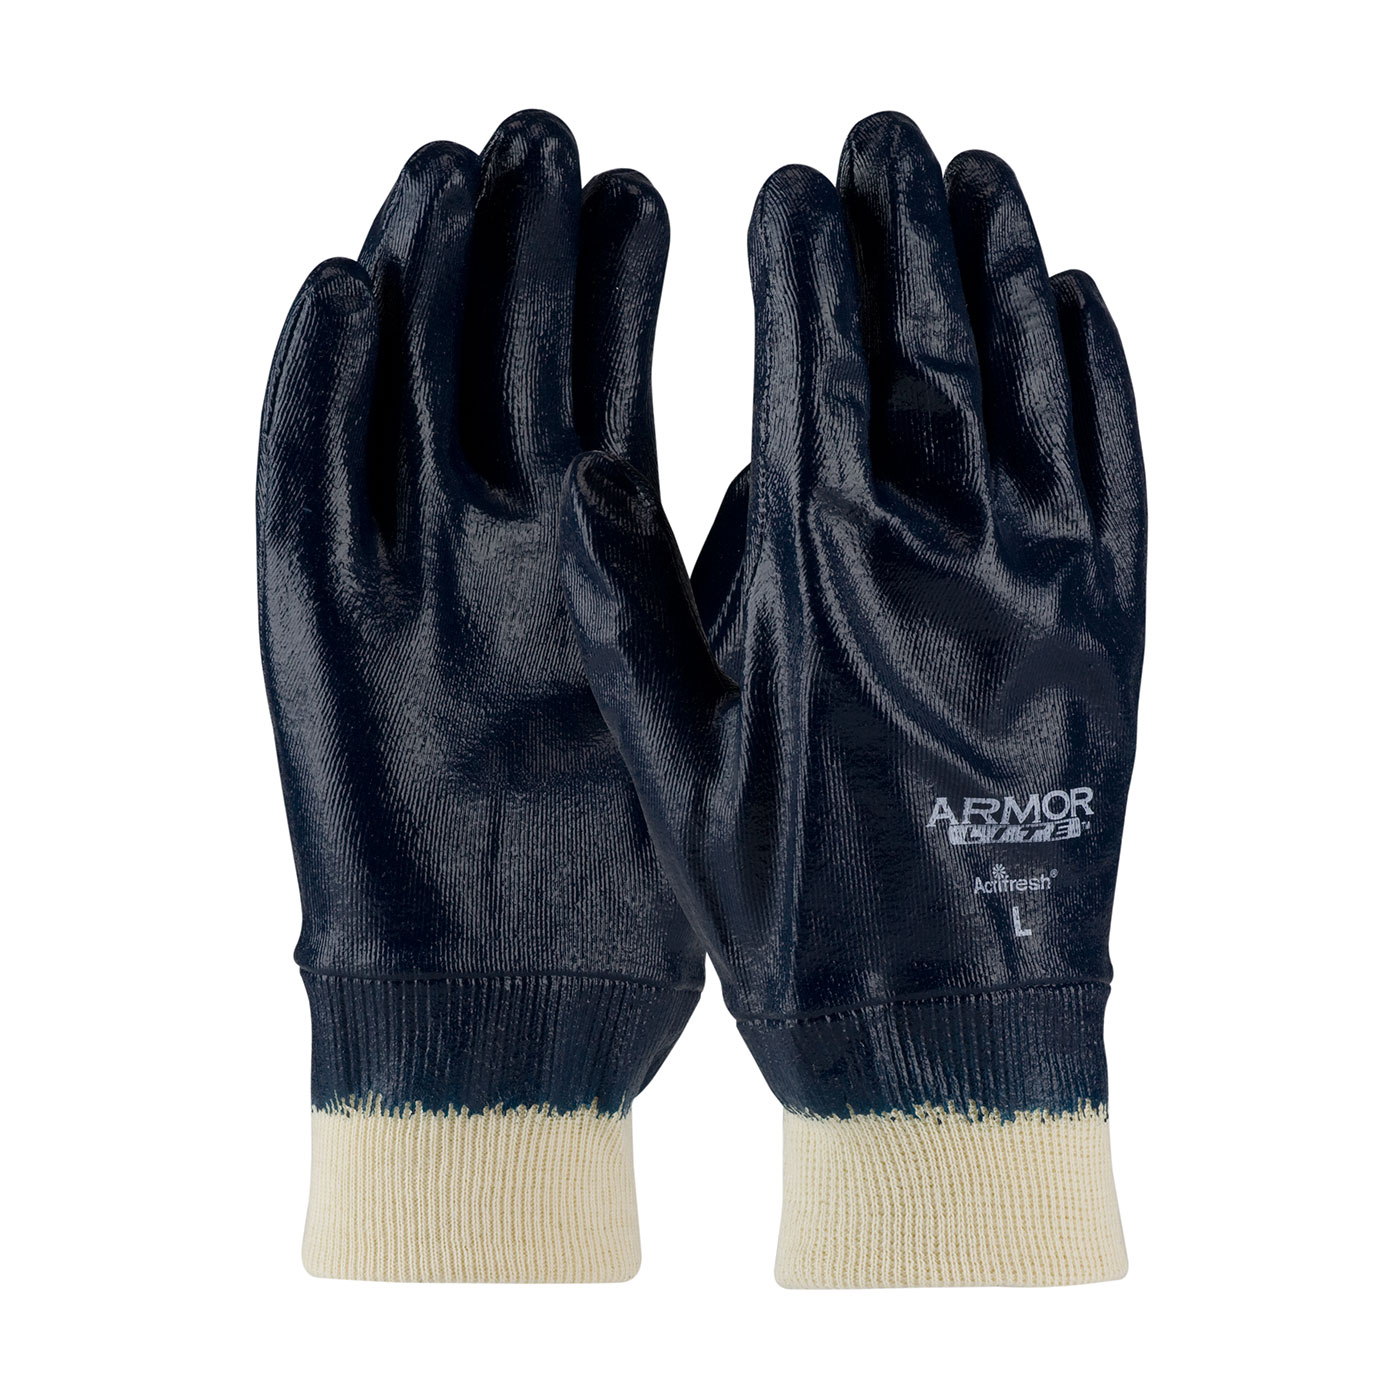 56-3171 PIP® ArmorLite® Nitrile Dipped Glove with Interlock Liner and Textured Finish on Hand - Knitwrist